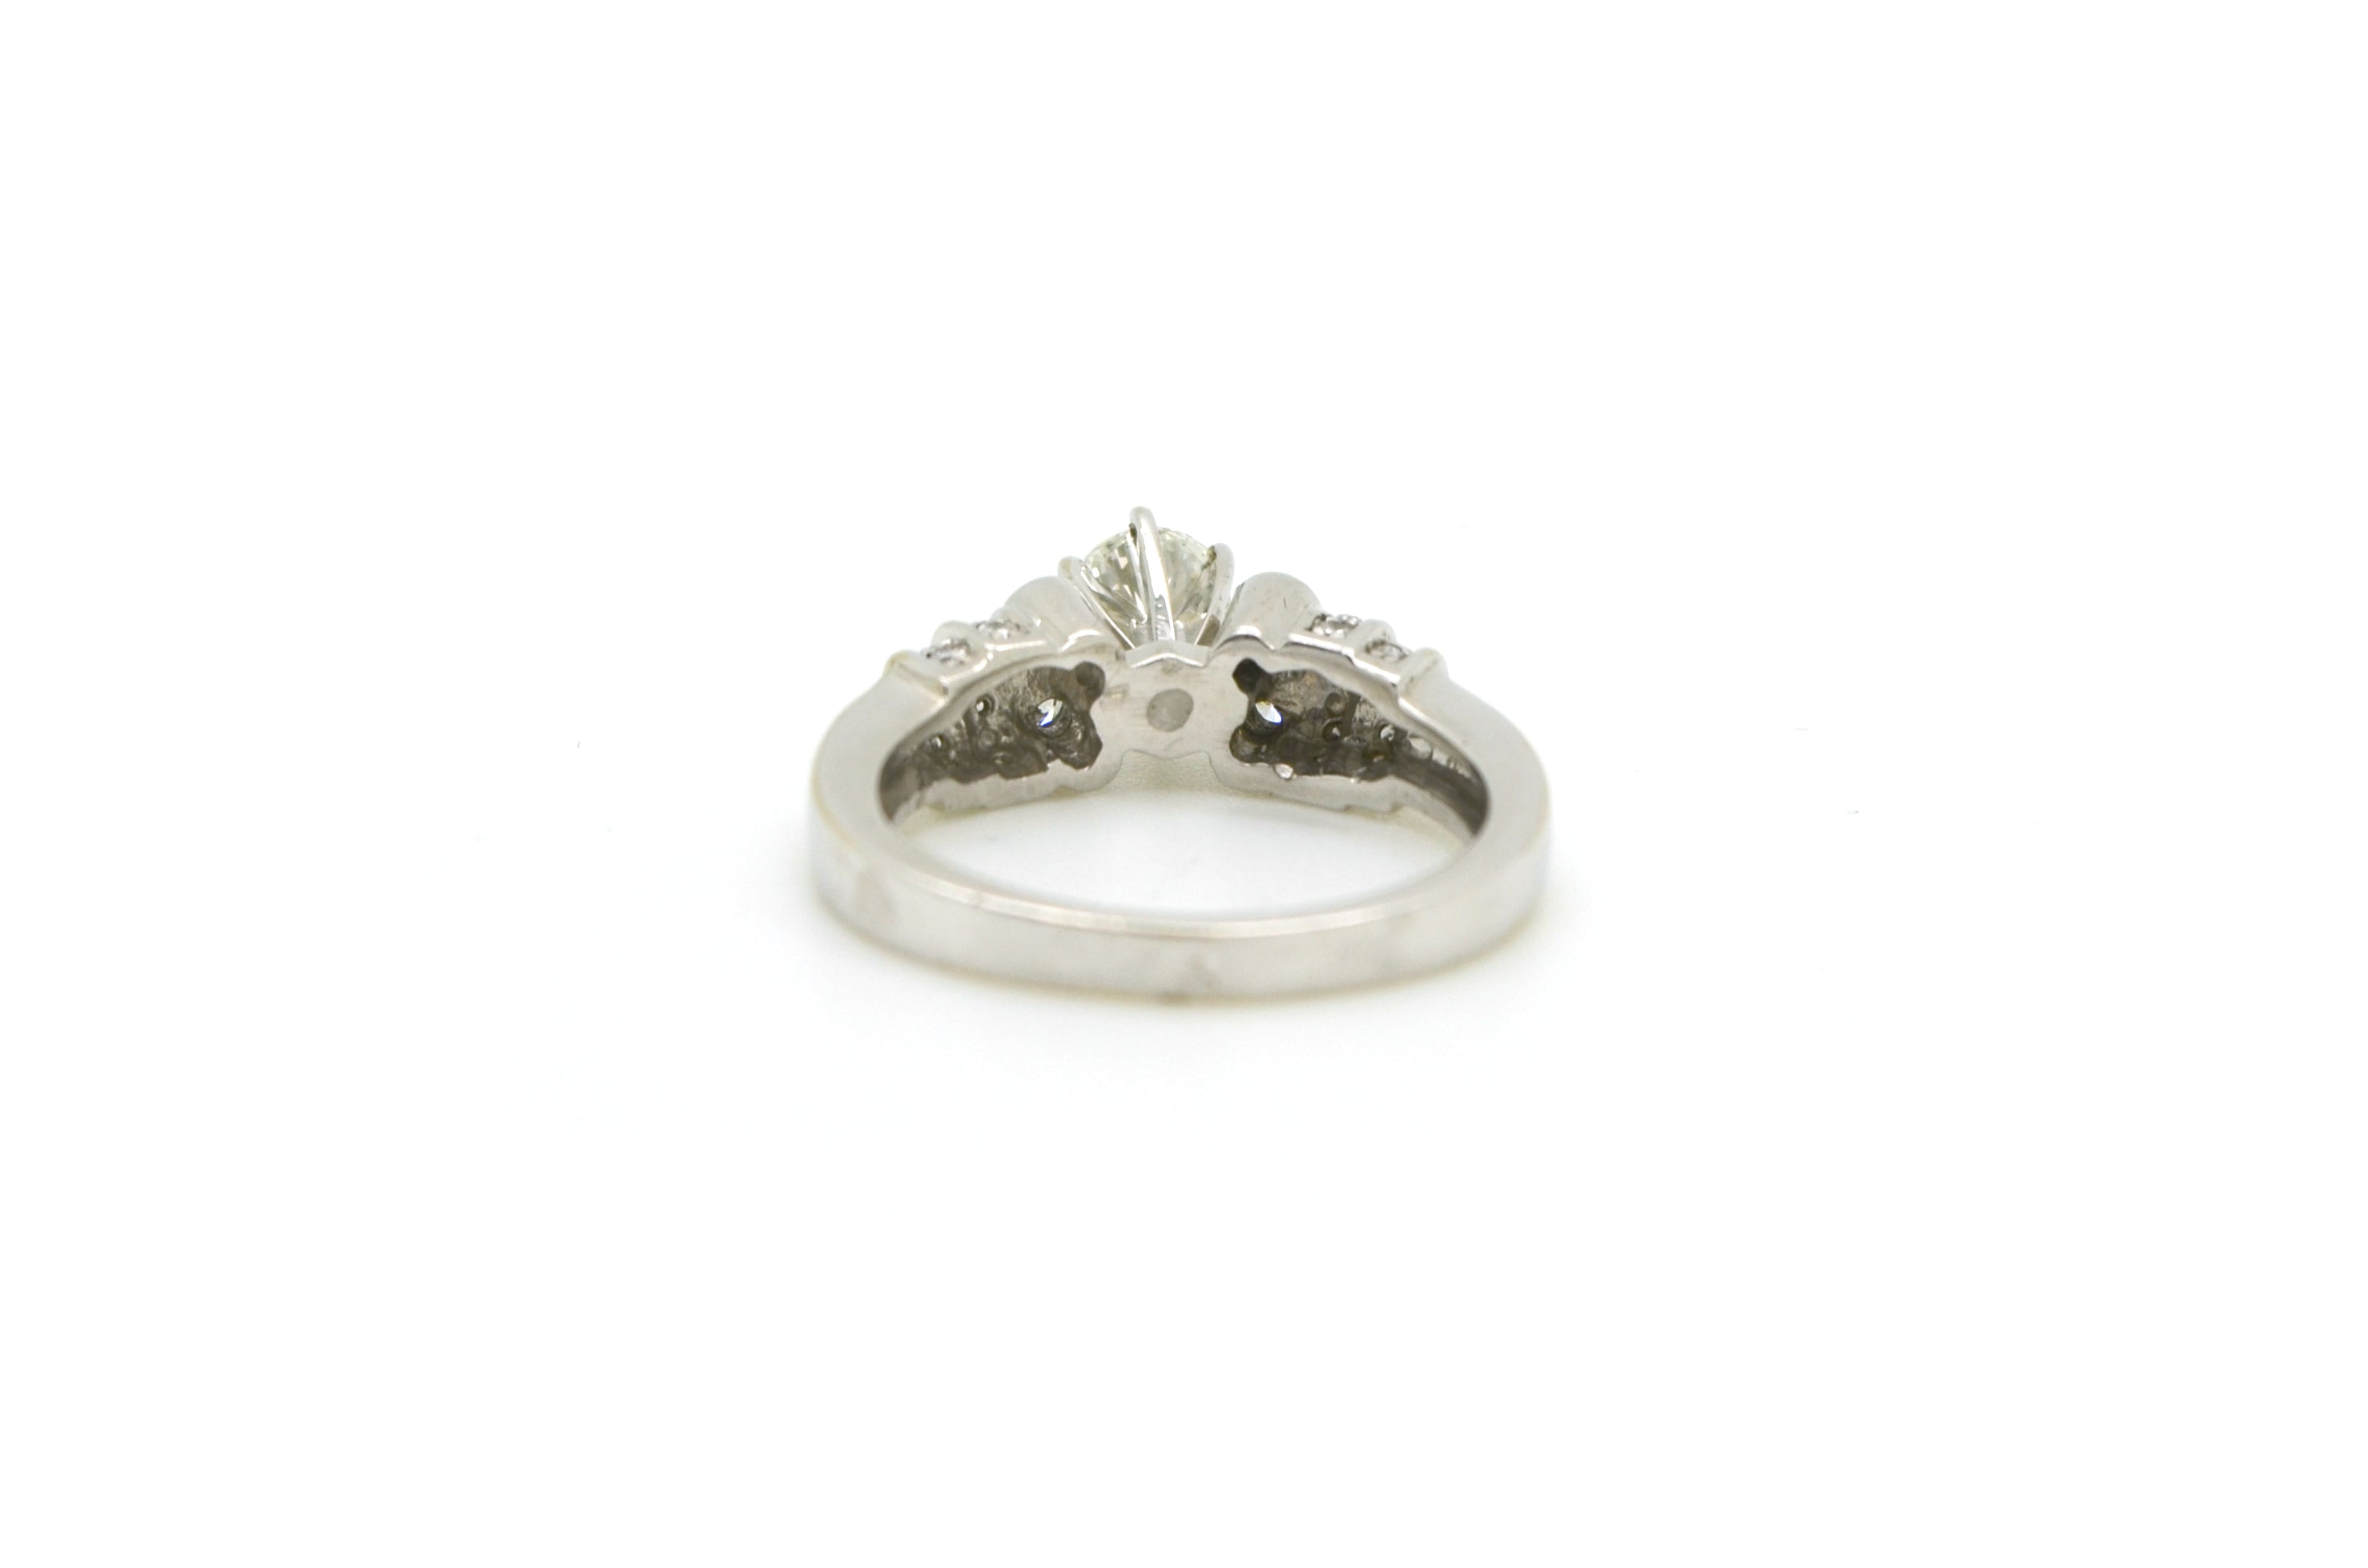 14k White Gold Round Diamond Engagement Promise Ring - .80 ct. total - Size 6.5